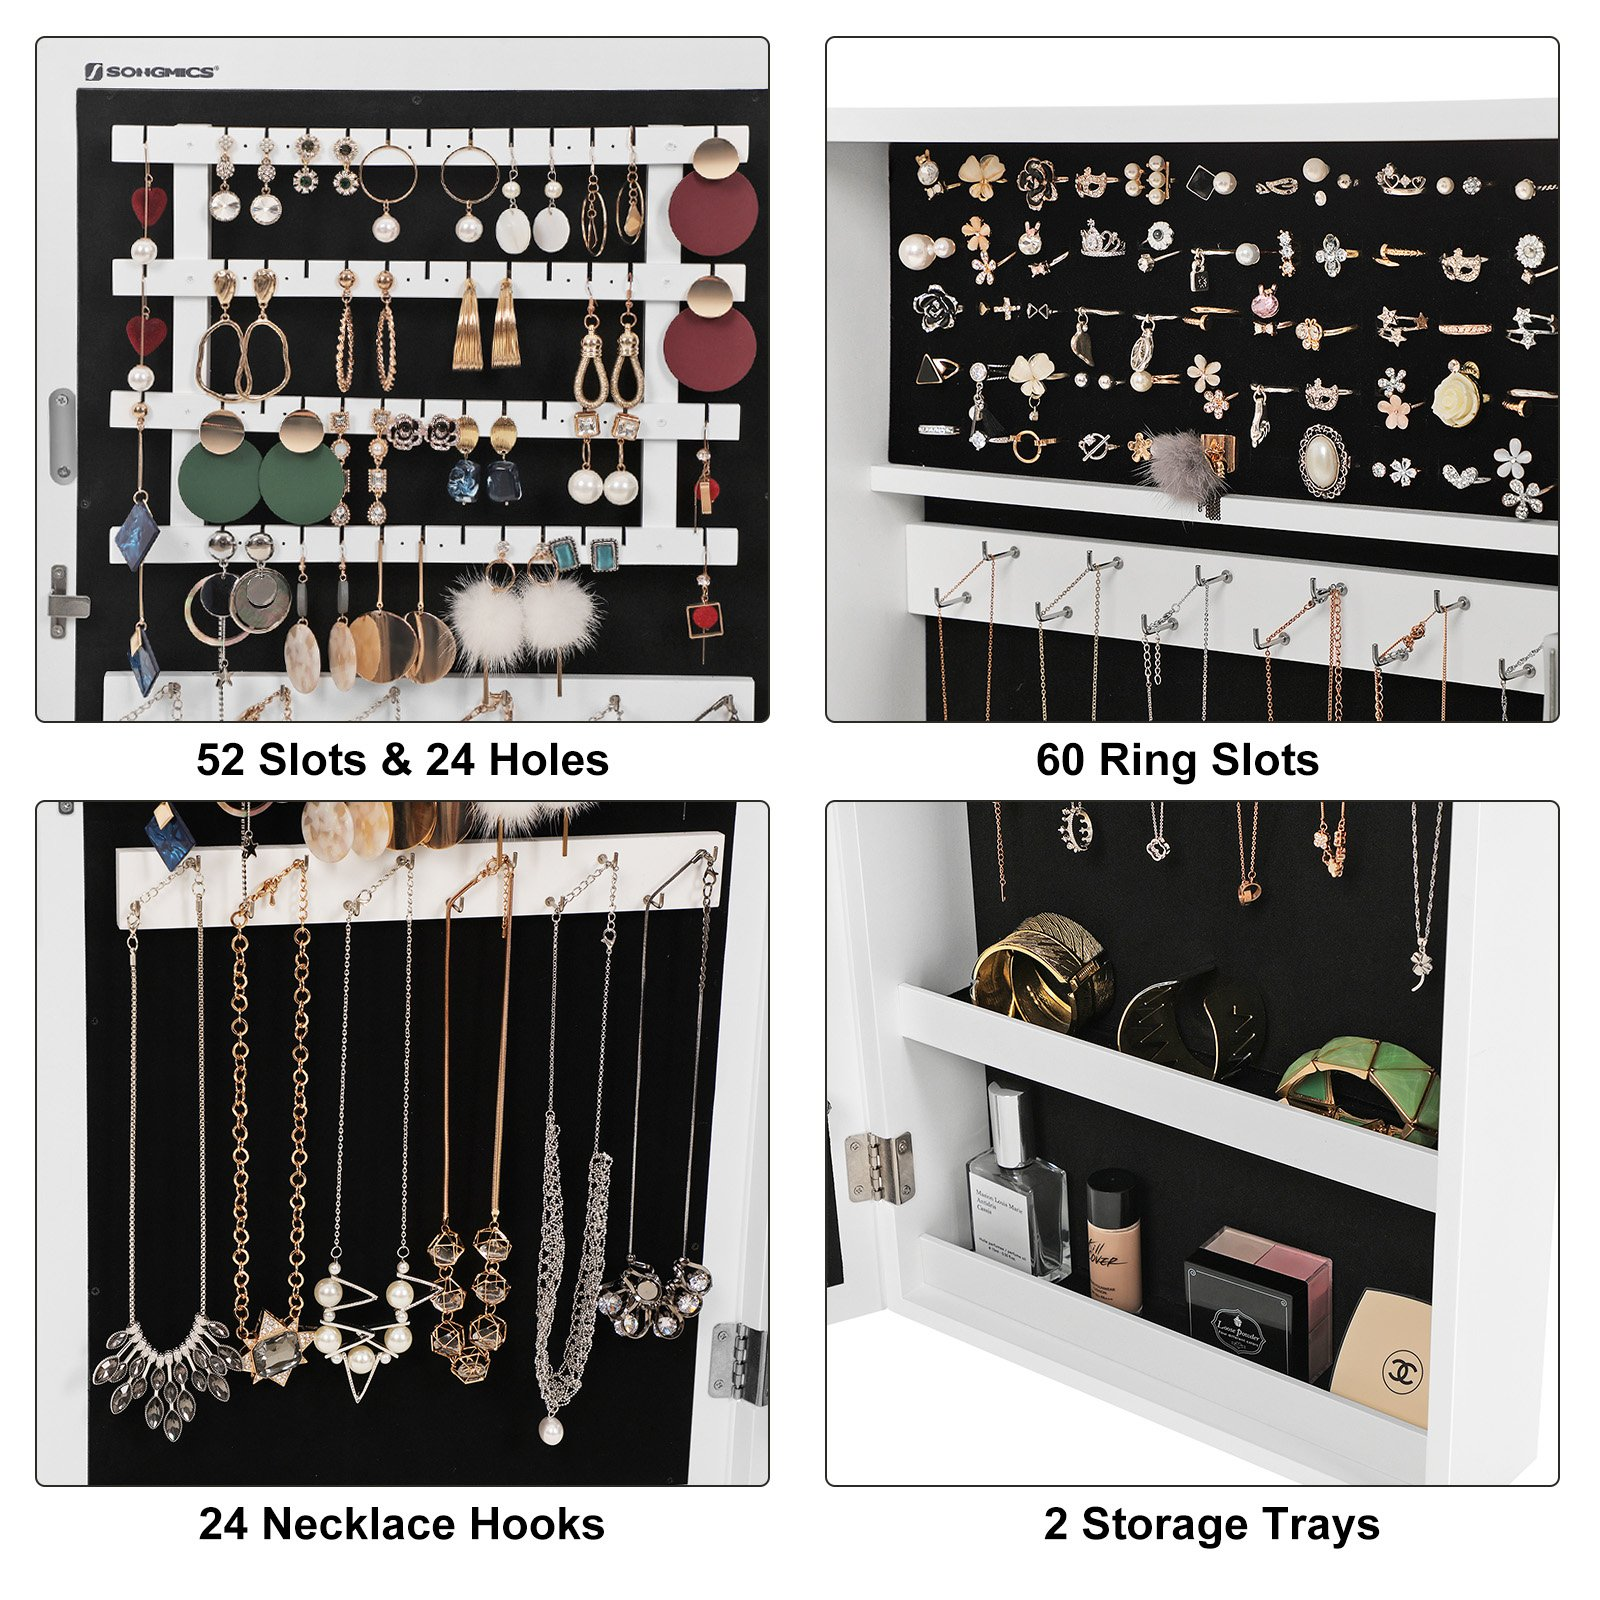 SONGMICS Lockable Jewelry Cabinet Armoire with Mirror, Wall-Mounted Space Saving Jewelry Storage Organizer White UJJC51WT by SONGMICS (Image #4)